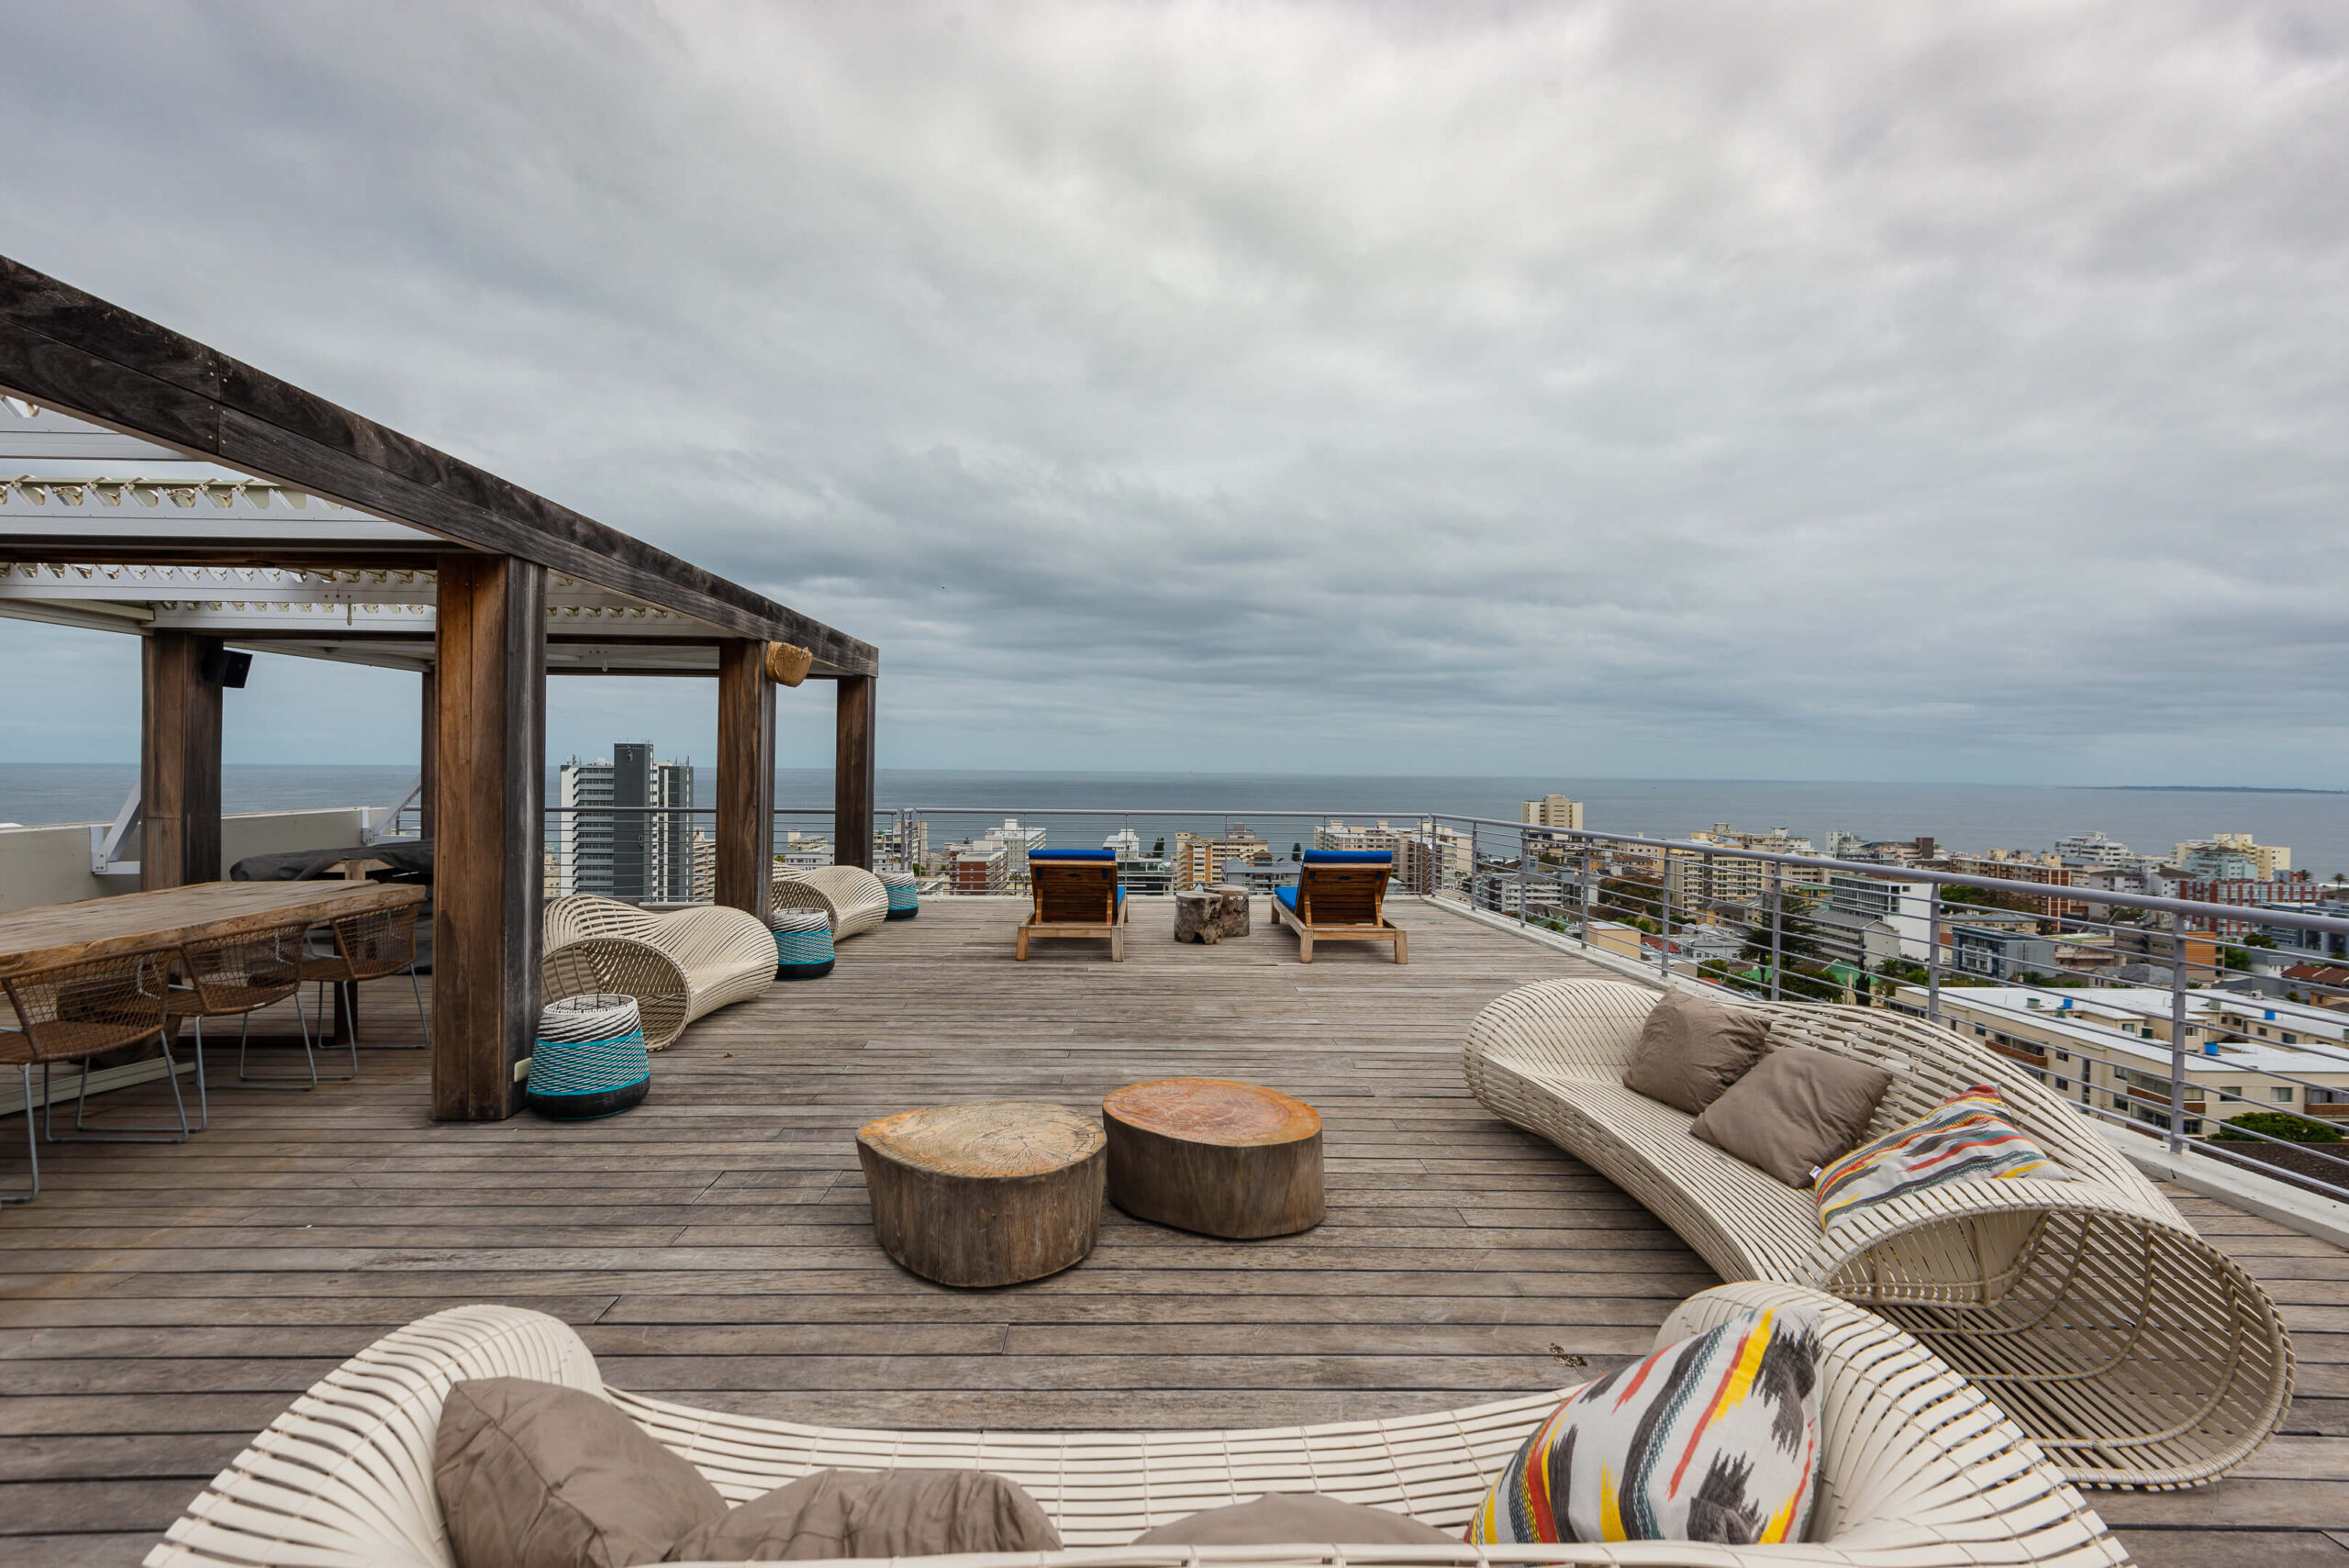 3 Bedroom Penthouse in Sea Point